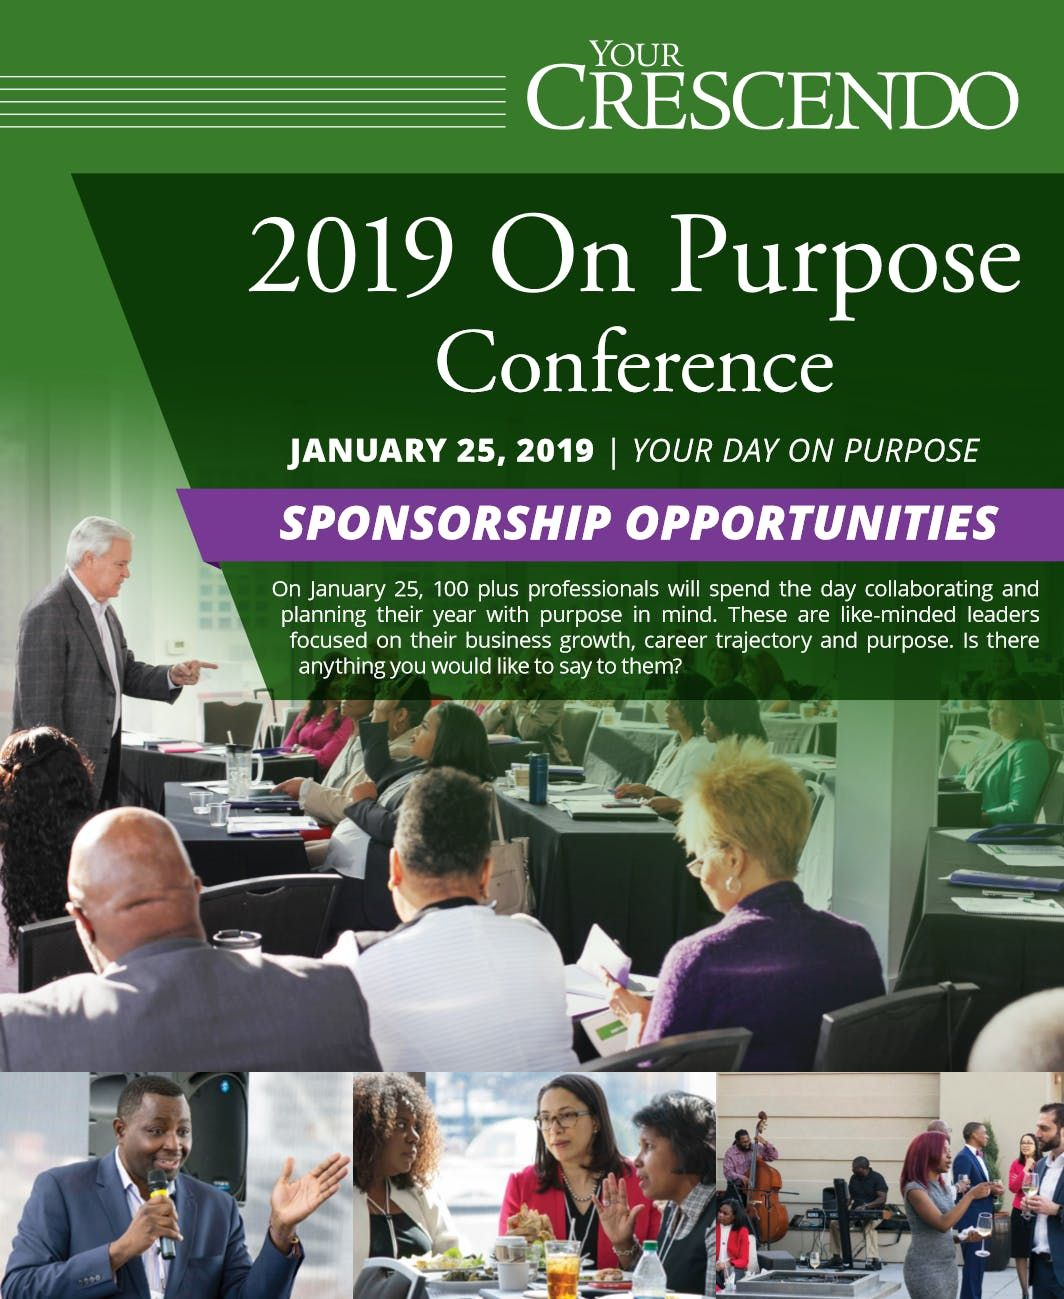 2019 On Purpose Conference